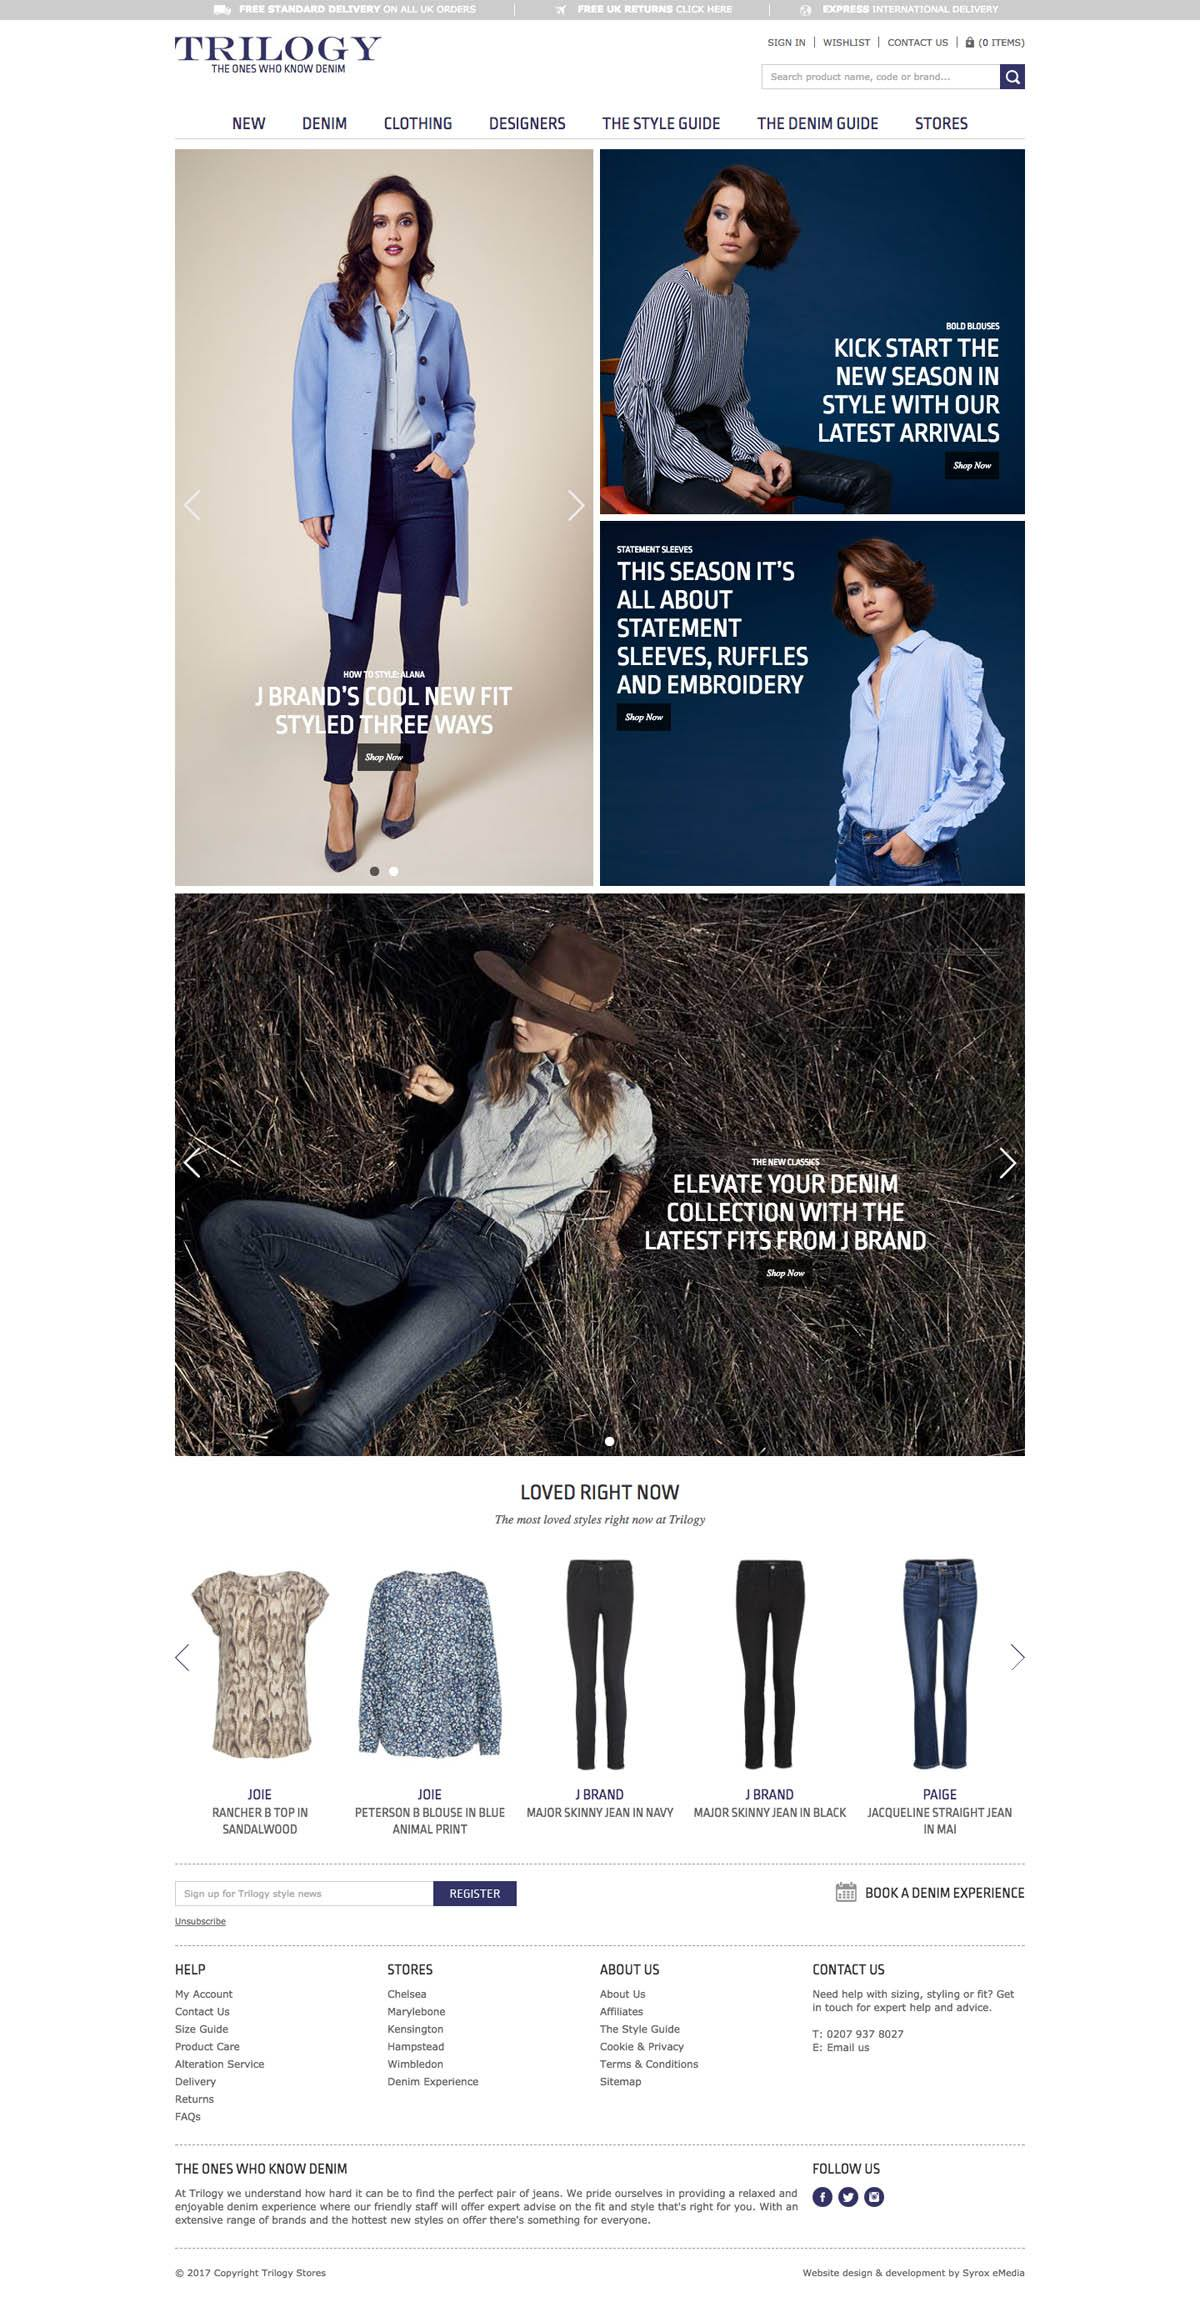 eCommerce website: Trilogy Stores